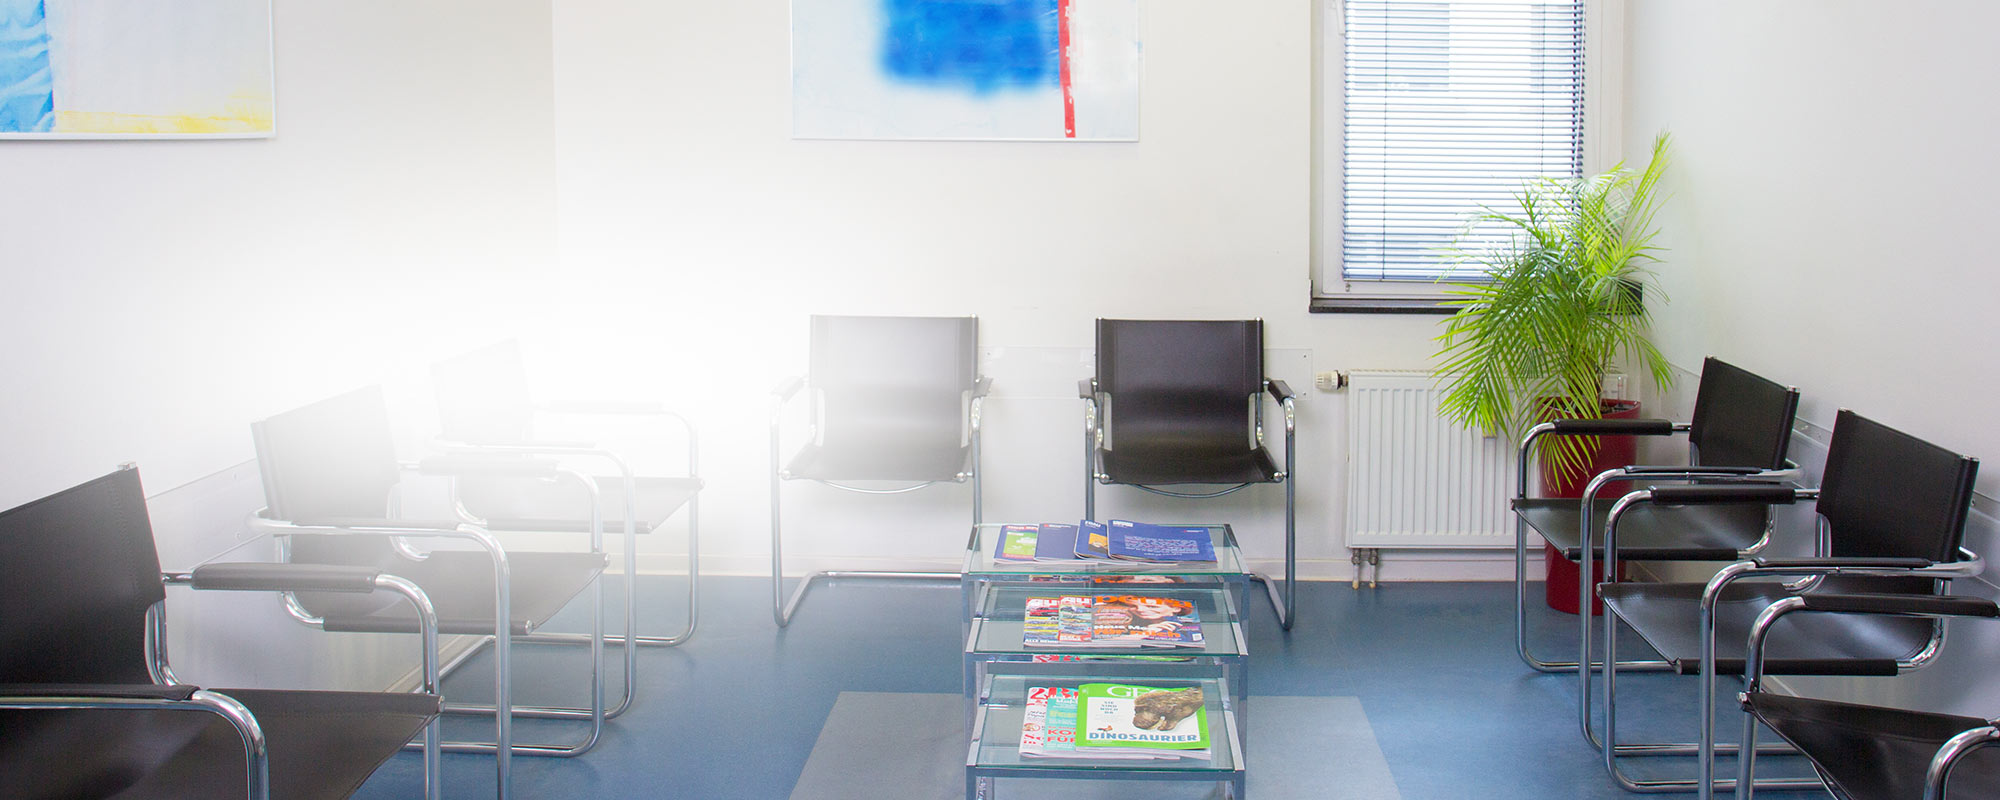 Contact <br><span> Gastroenterology in Düsseldorf </span>